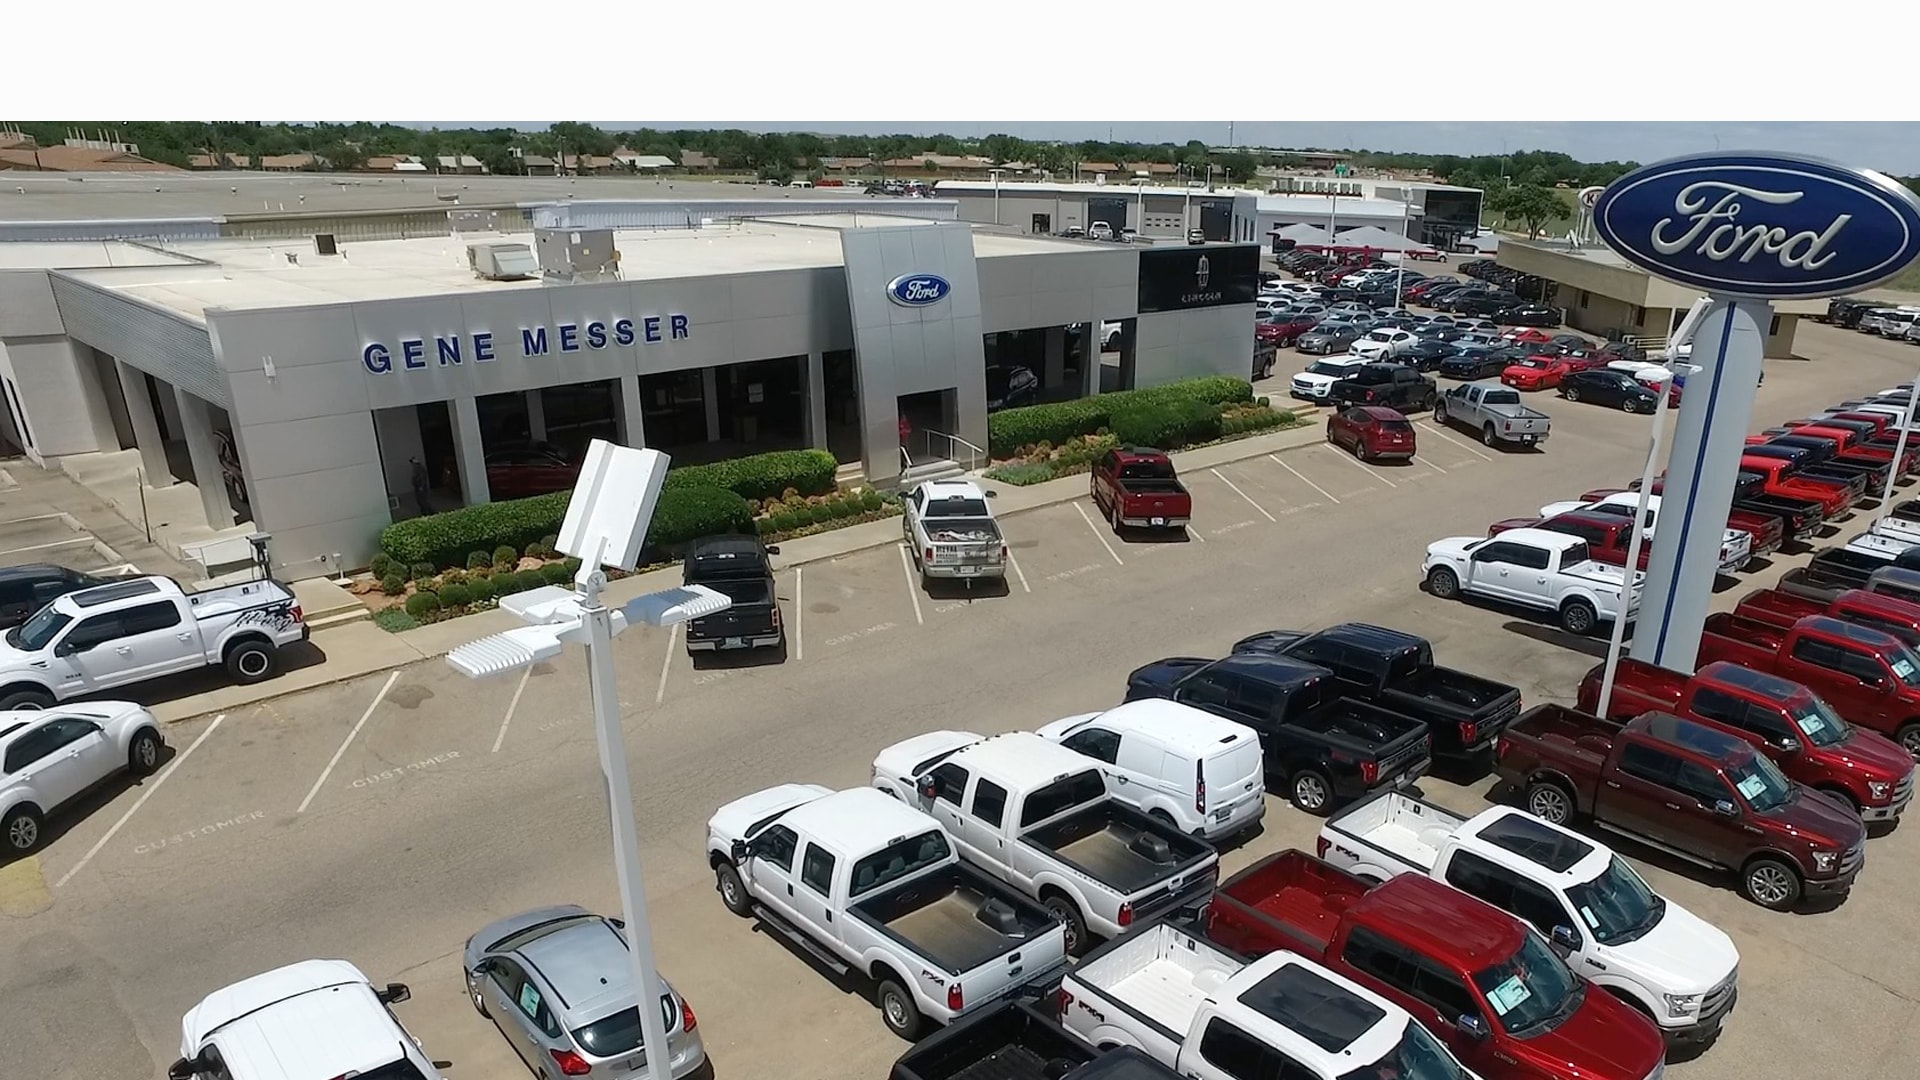 Gene Messer Ford Lincoln New Used Ford Car Dealership In Lubbock Tx